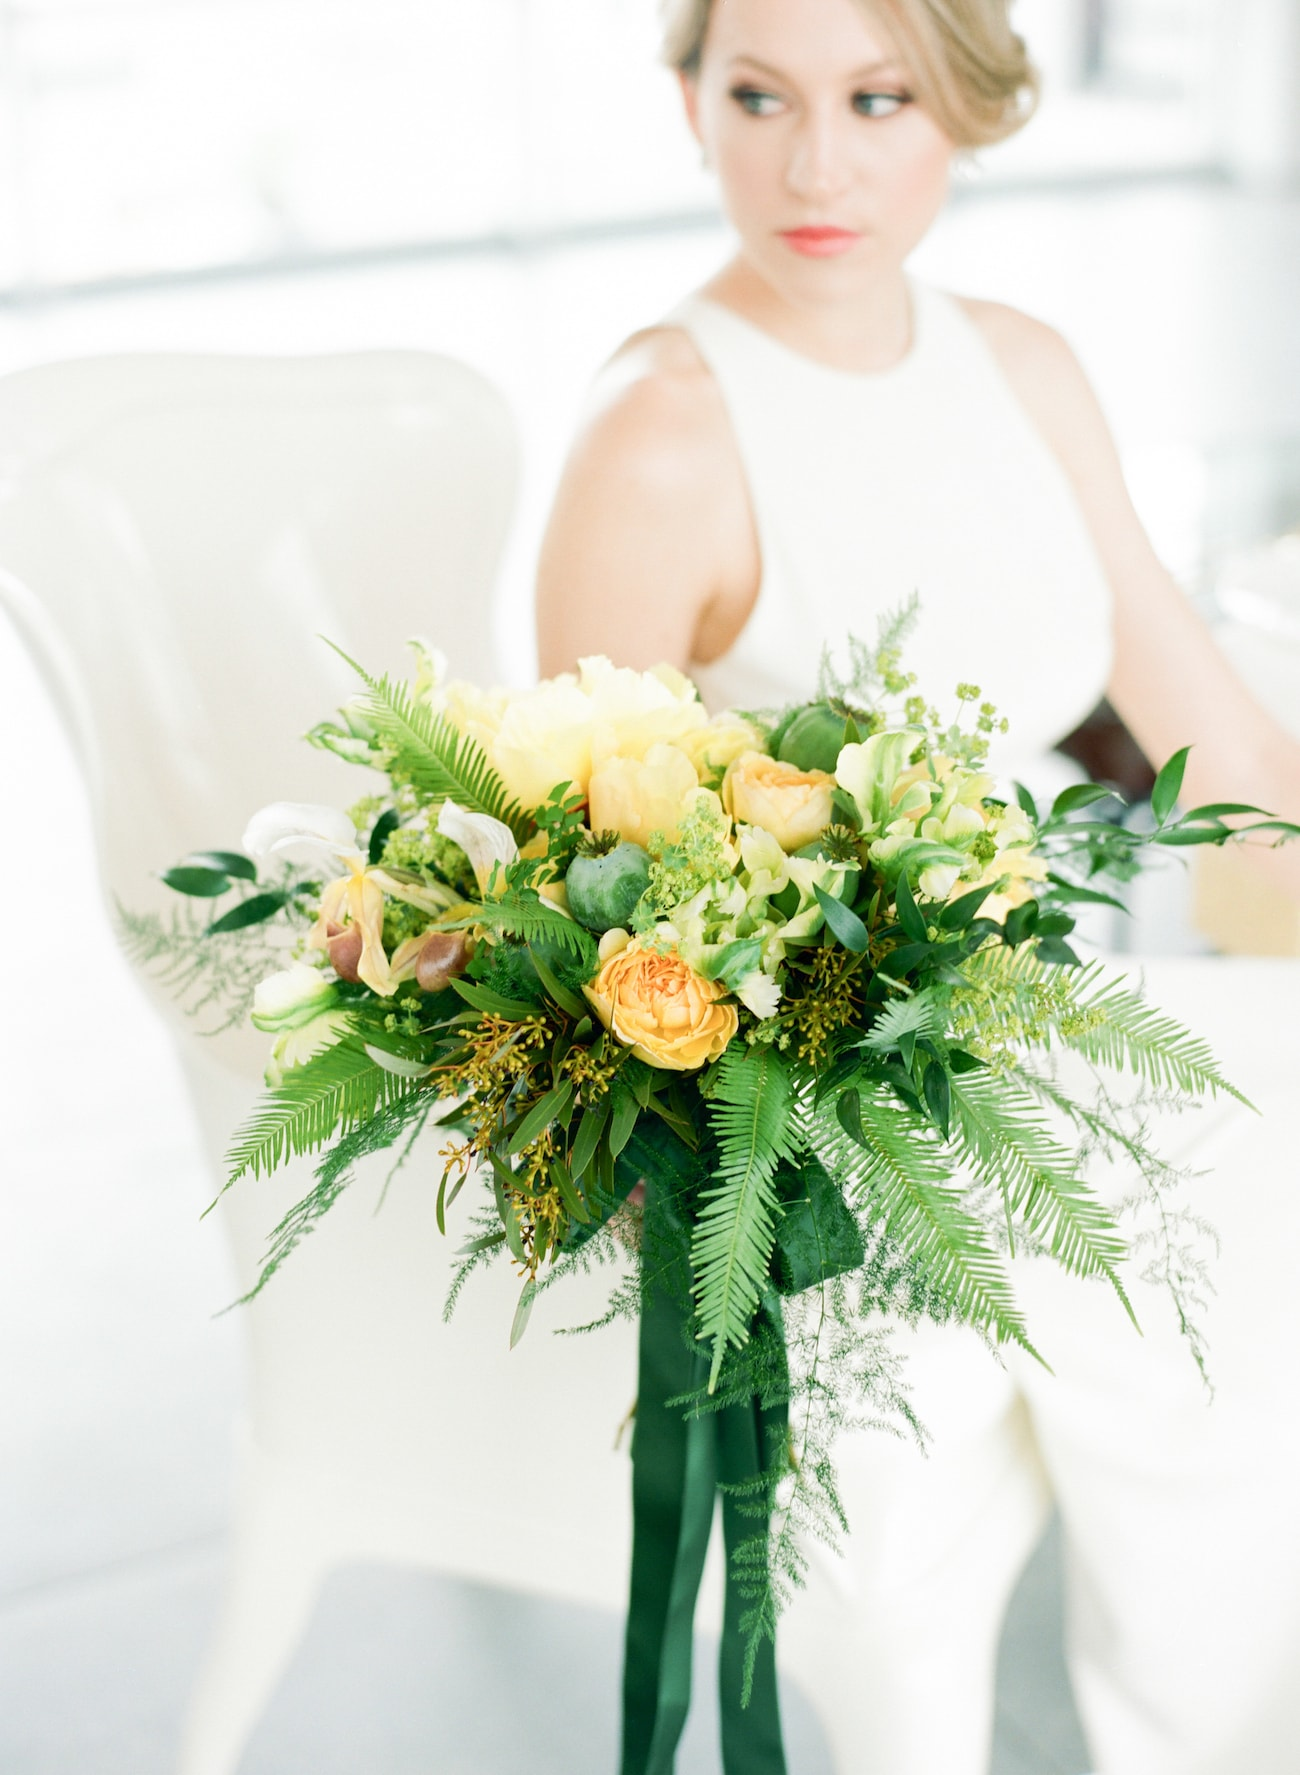 Tropical Greenery Wedding Bouquet | Credit: Ruth Eileen Photography